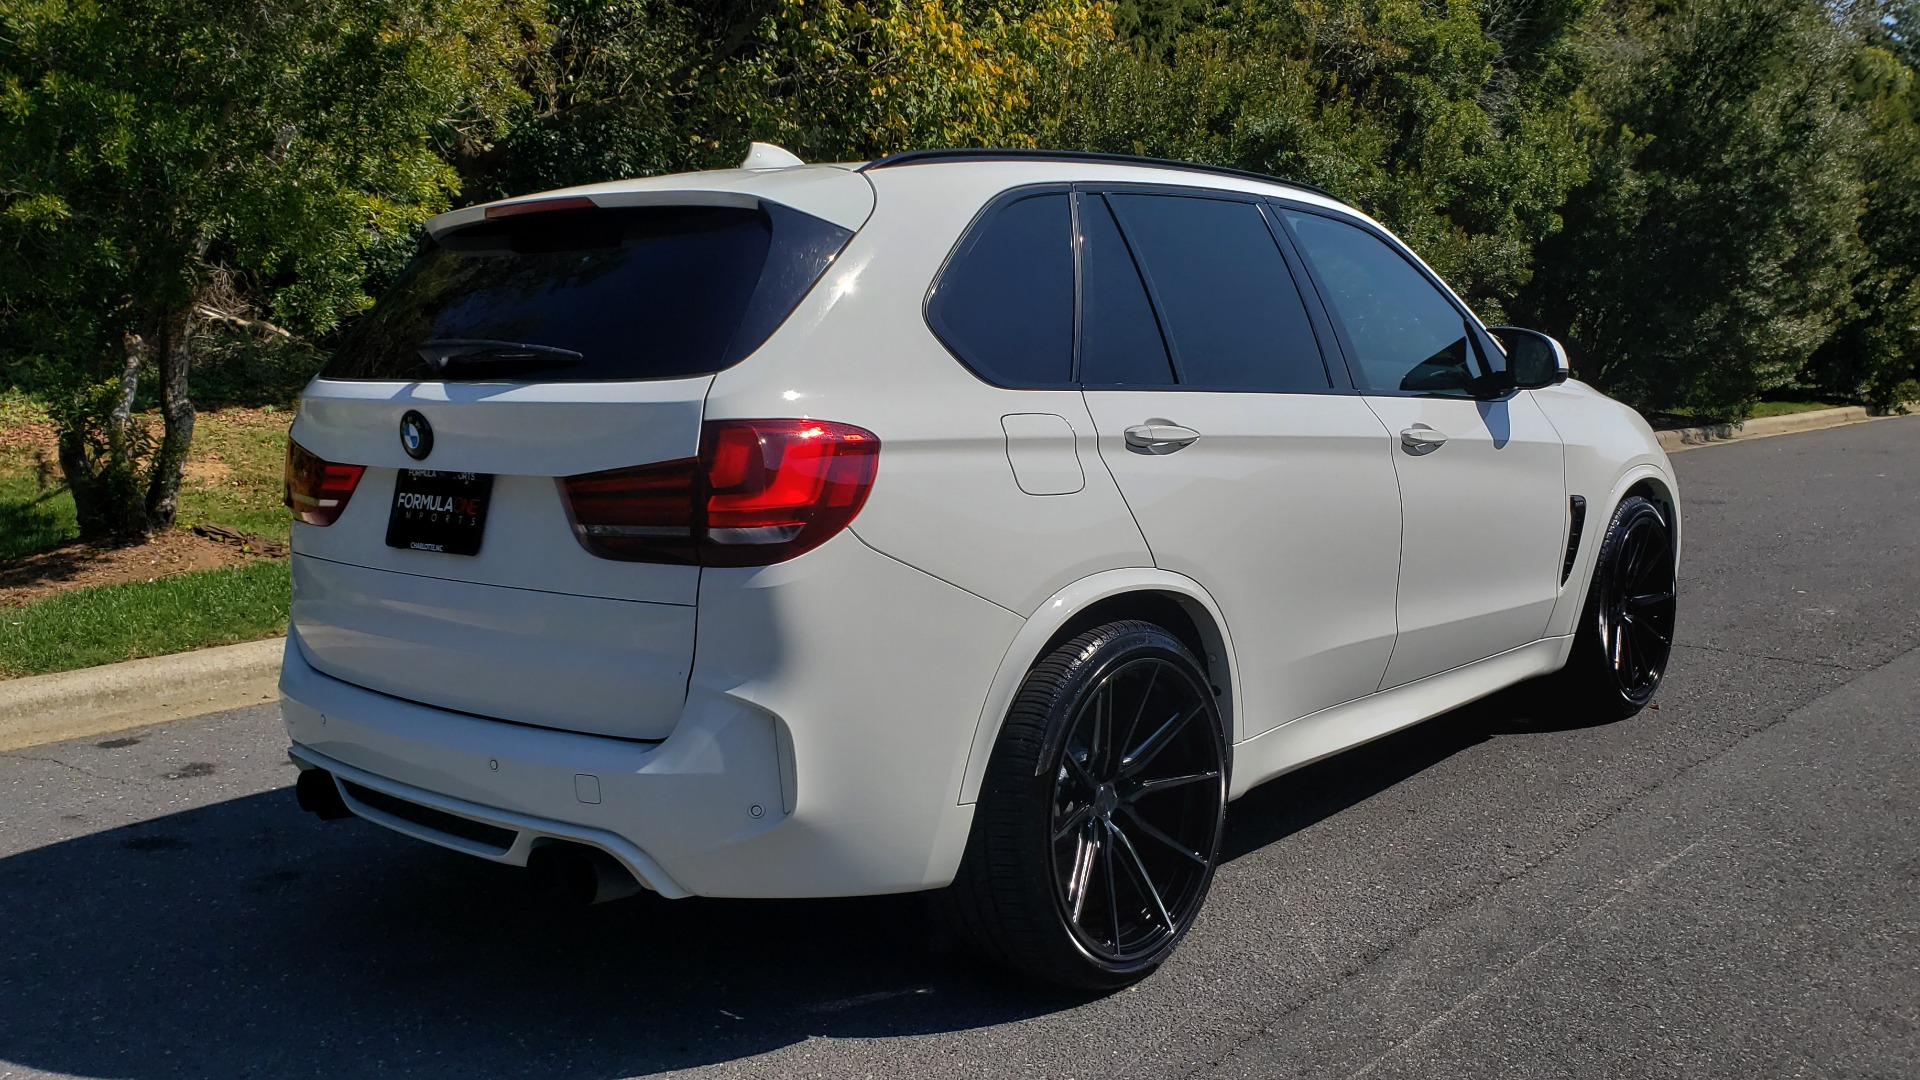 Used 2017 BMW X5 M SPORT / AWD / DRVR ASST / EXEC PKG / B&O SND / NIGHT VIS / PARK ASST for sale Sold at Formula Imports in Charlotte NC 28227 2